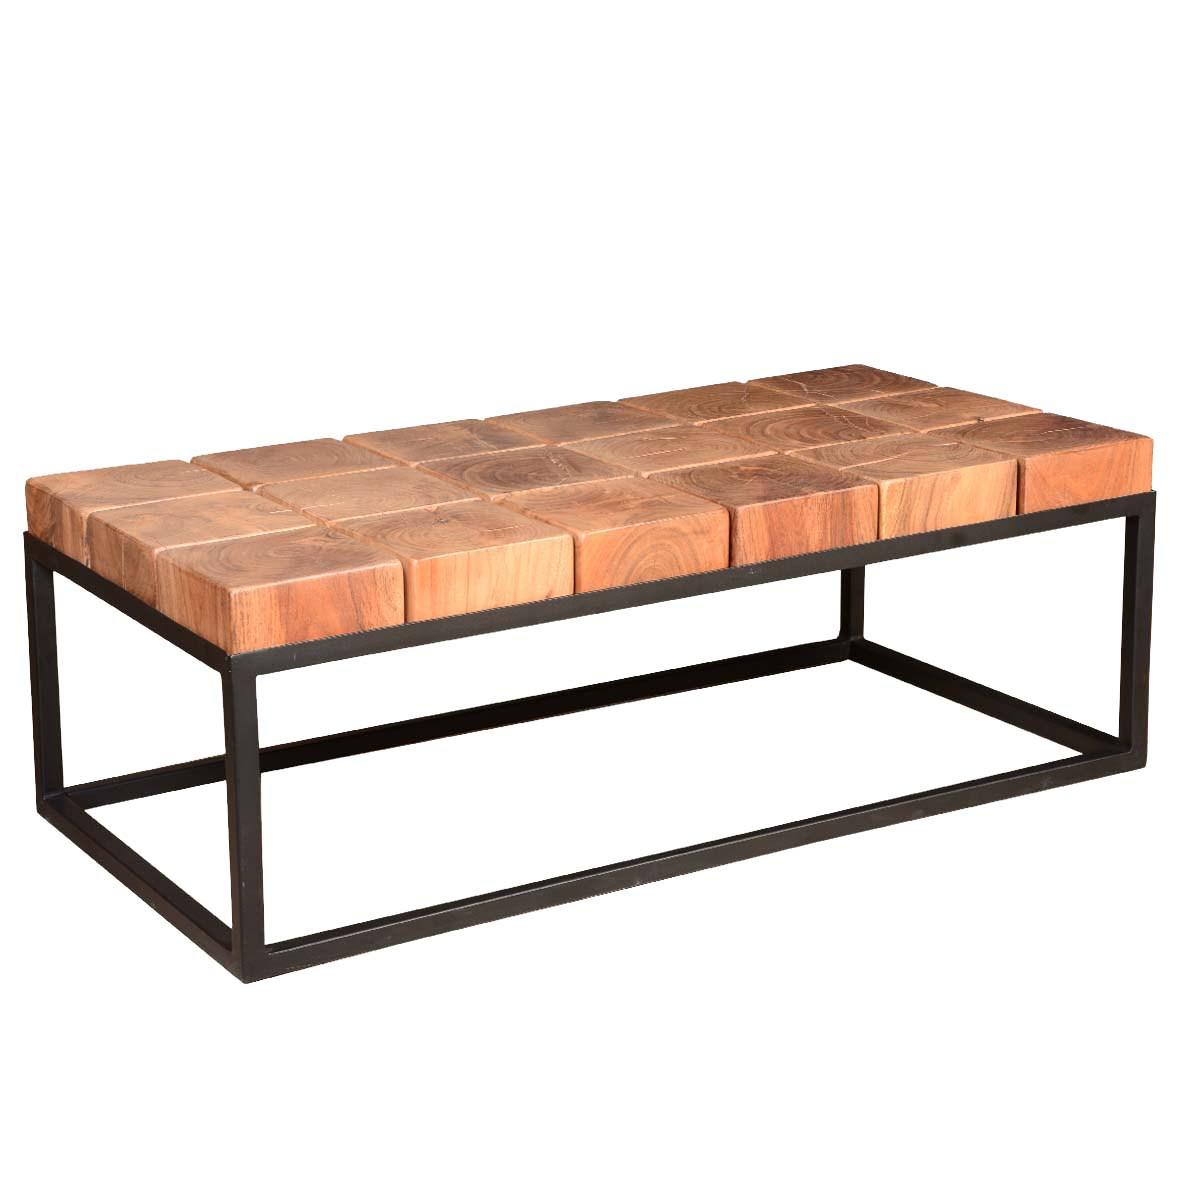 coffee table products wood lacquer material accent tables acacia block contemporary iron base rustic square slab seville dark with drawers winchester large ideas related colville